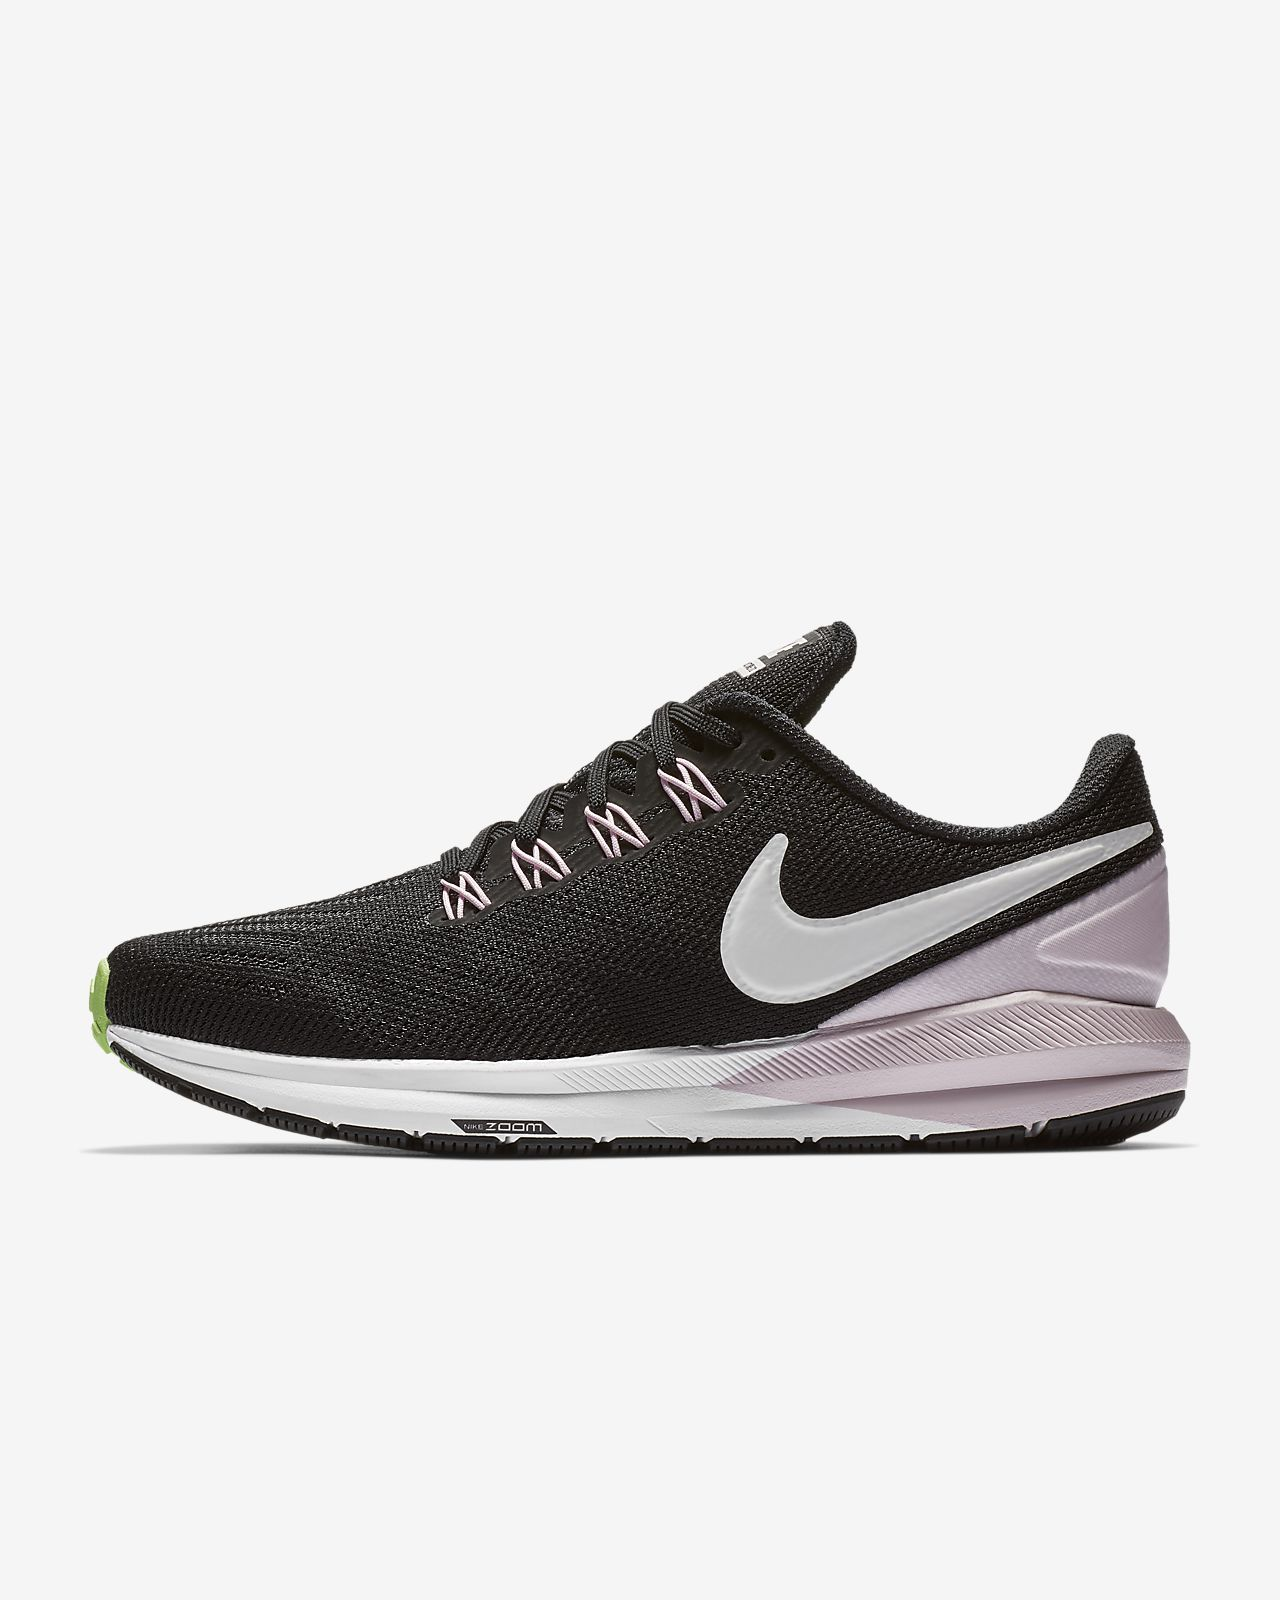 newest 5e530 2829c ... Nike Air Zoom Structure 22 Womens Running Shoe